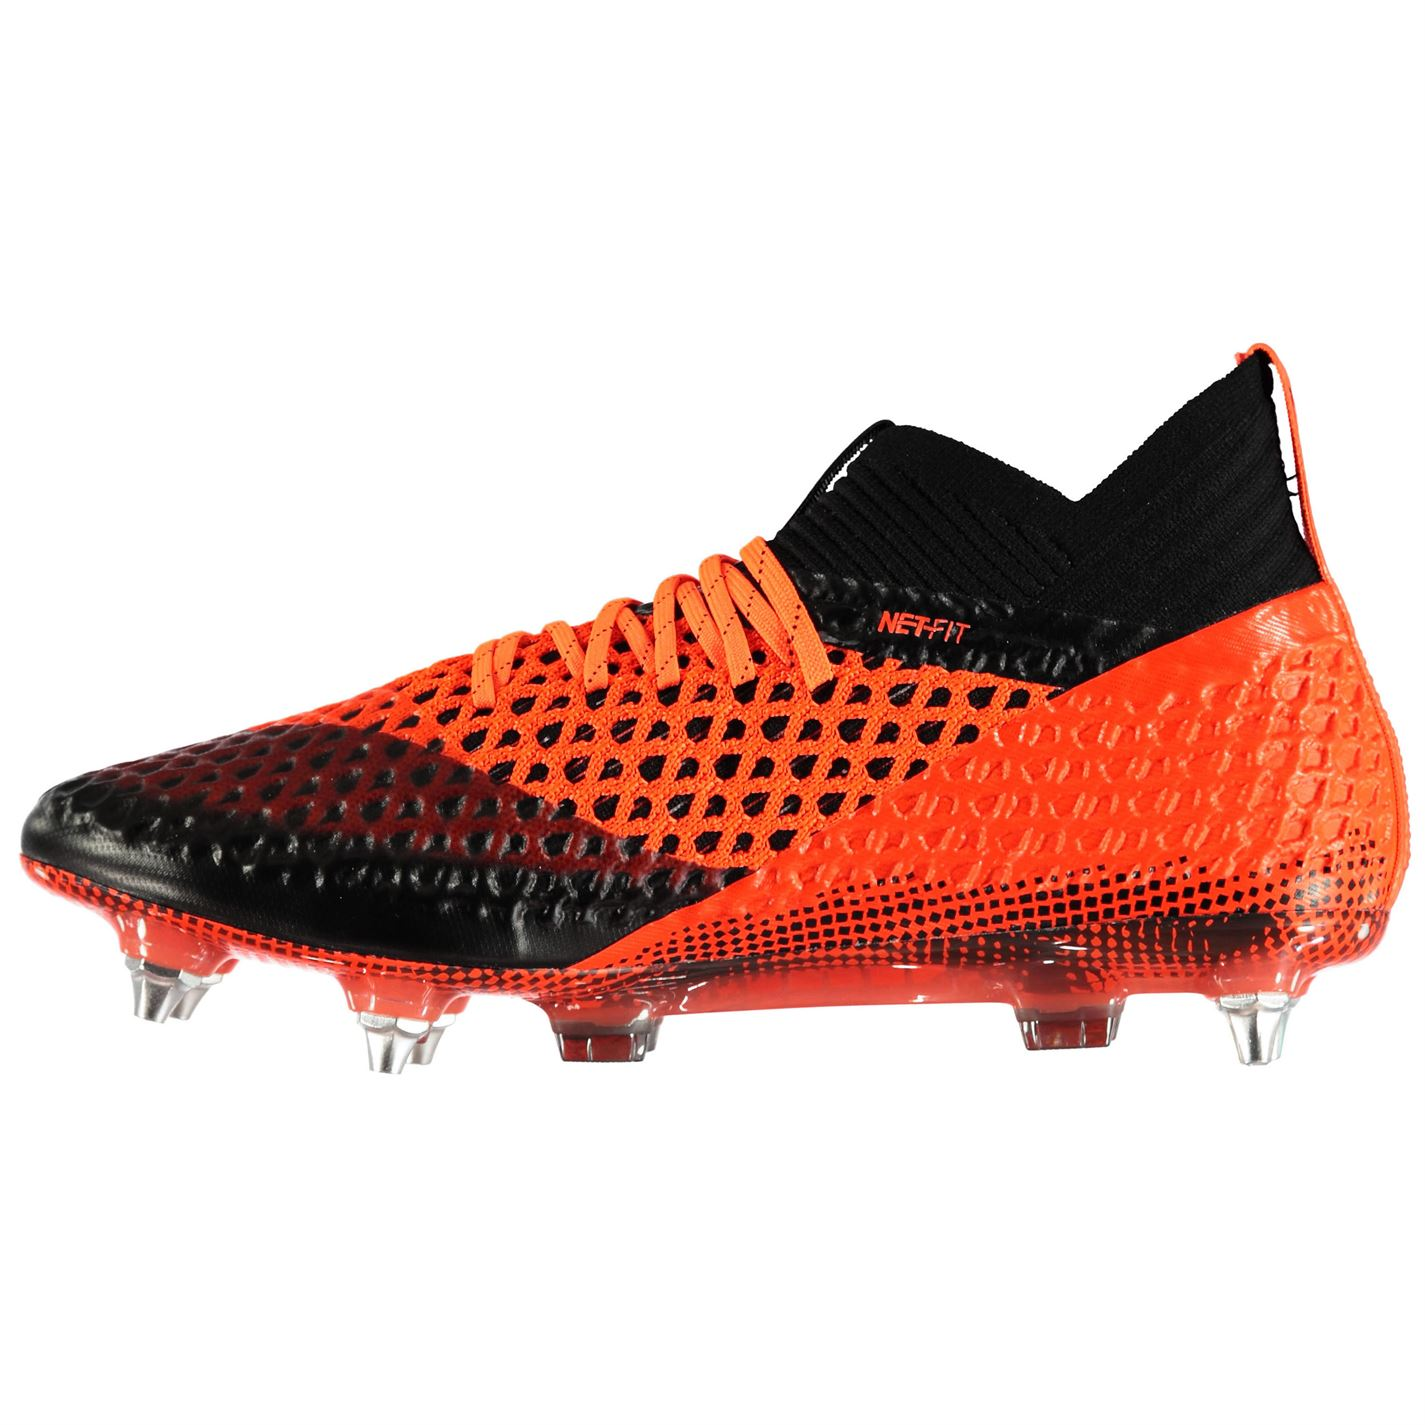 Puma Mens Future 2.1 SG Football Boots Boots Boots Soft Ground Lightweight Studs Knit 0b1a9e